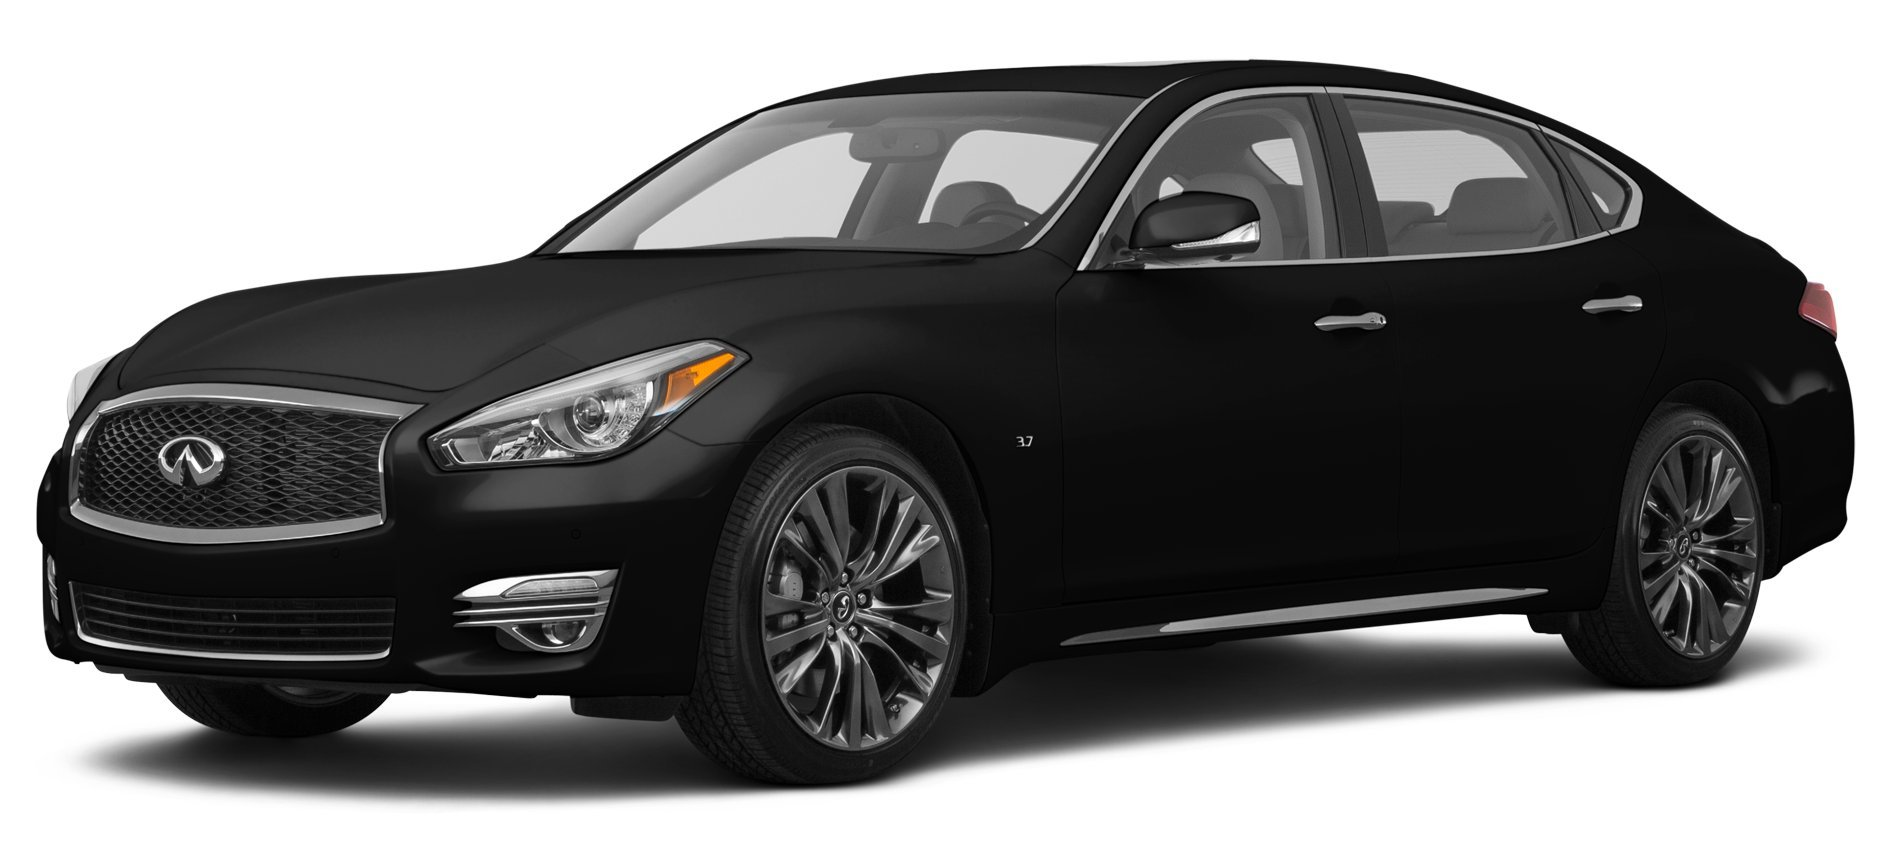 2017 infiniti q70l reviews images and specs vehicles. Black Bedroom Furniture Sets. Home Design Ideas